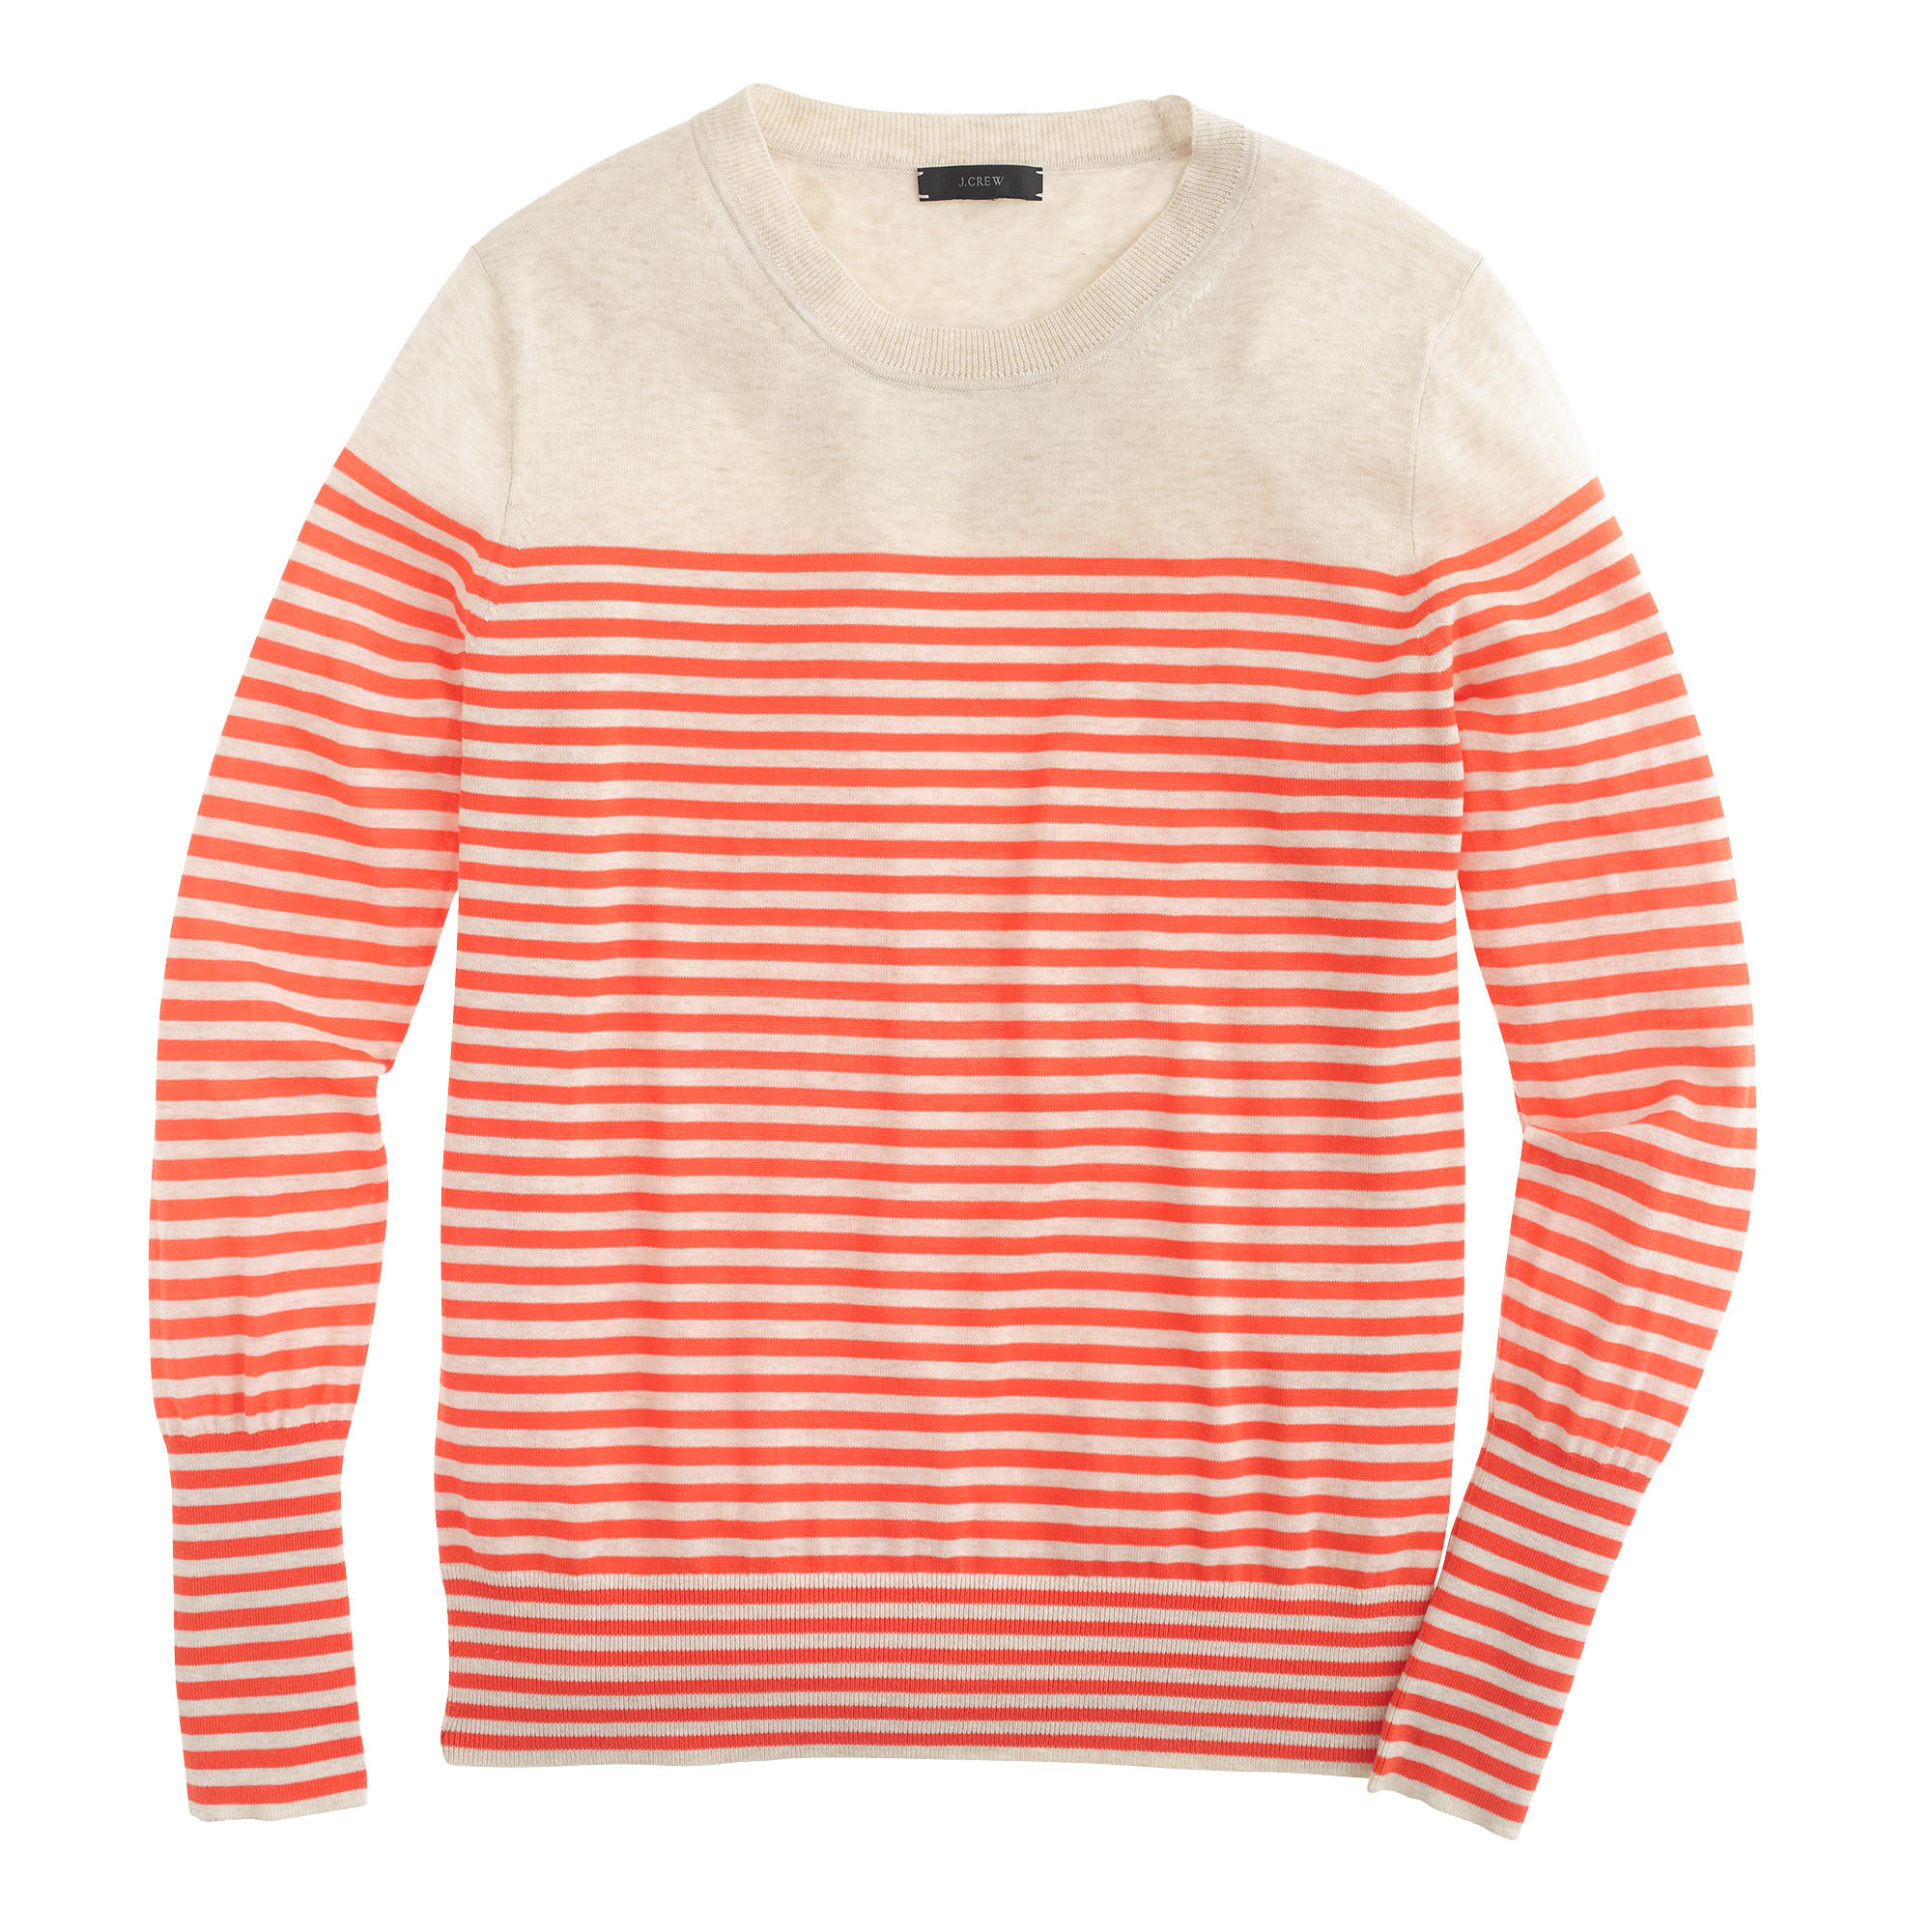 J.crew Summerweight Cotton Sweater In Stripe in Orange | Lyst